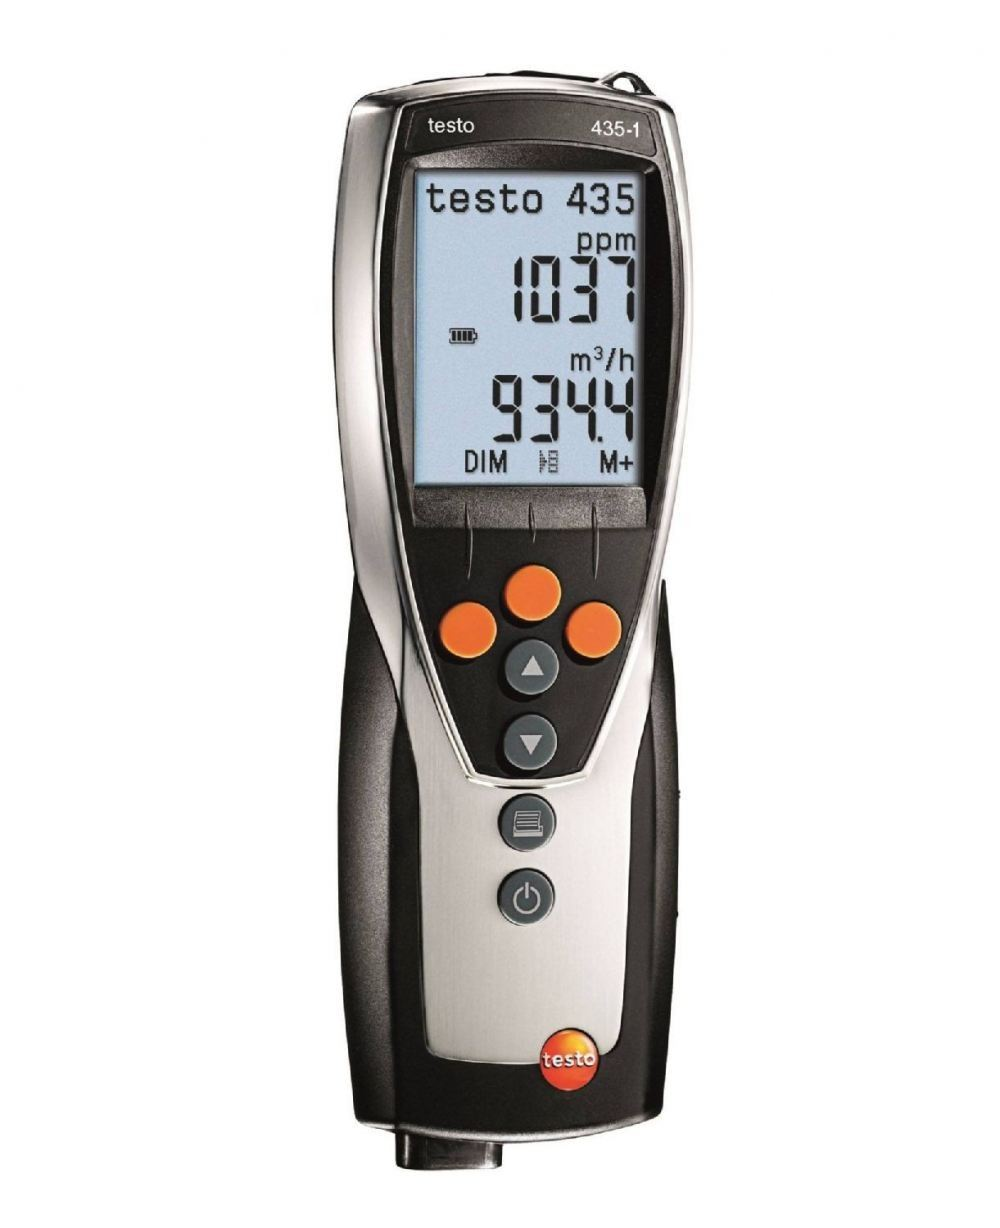 TESTO 435-1 Multi-function climate measuring instrument